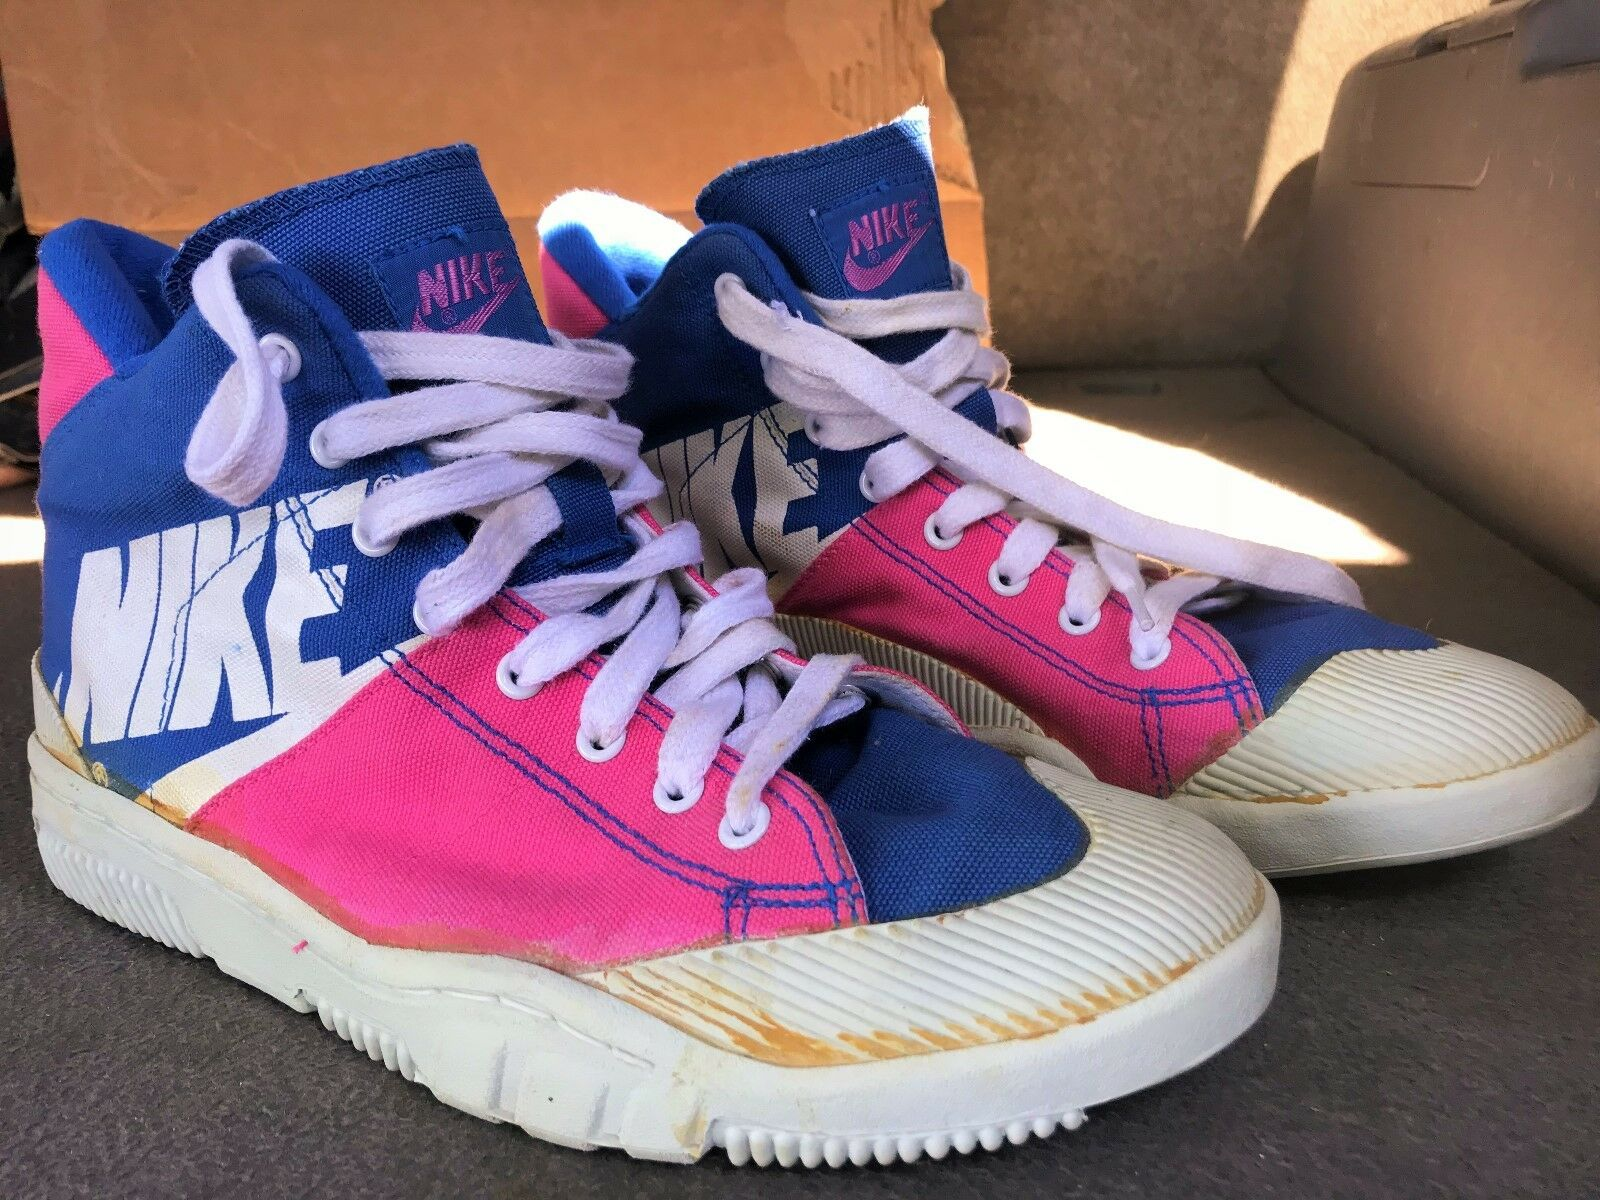 Vtg NIKE OUTBREAK Shoes 9.5 SUPER RARE Supreme Canvas AIR Hot Pink OG's ACG Star The most popular shoes for men and women